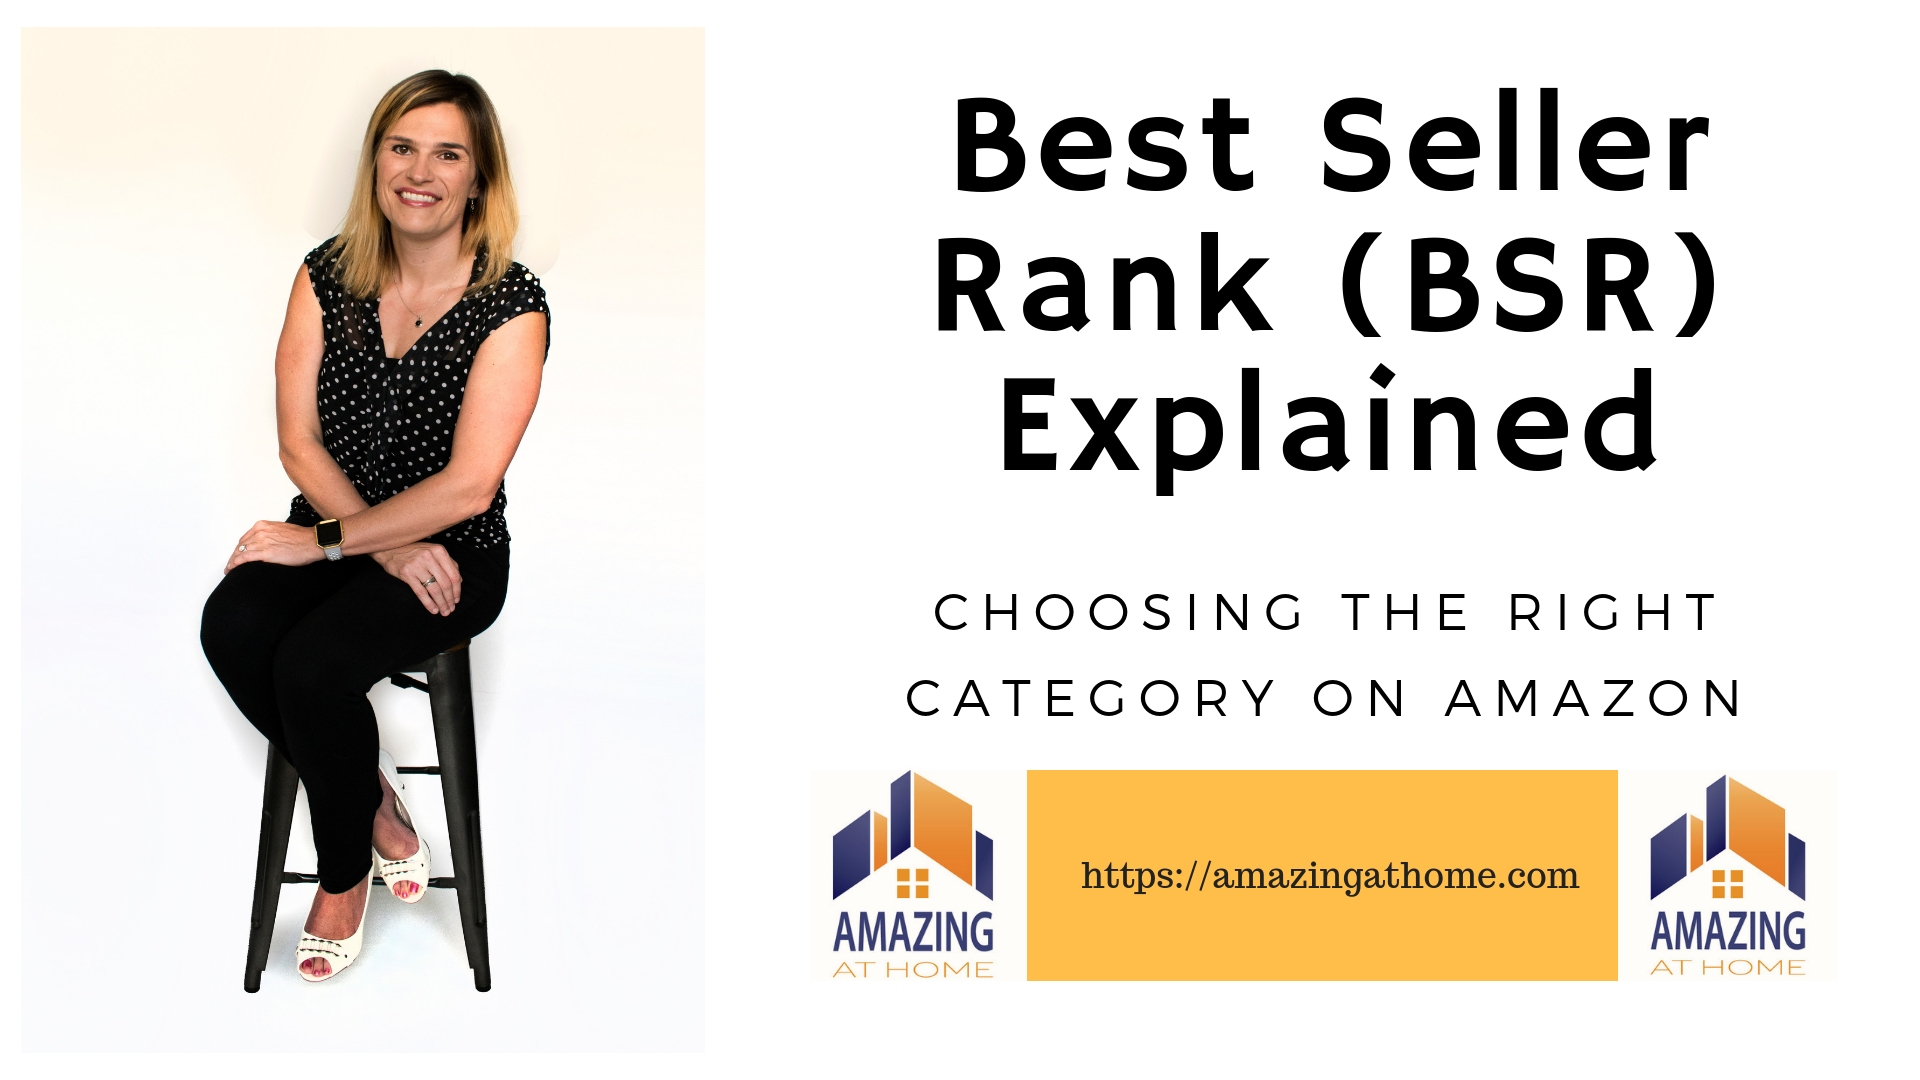 amazon sales rank chart, what is a good amazon sales rank, amazon bsr chart, amazon bsr tool, amazon bsr calculator, amazon bsr list, amazon bsr tracker, amazon seller central, amazon categories, product categories for selling on Amazon, The ungated Amazon categories, external traffic, amazon PPC